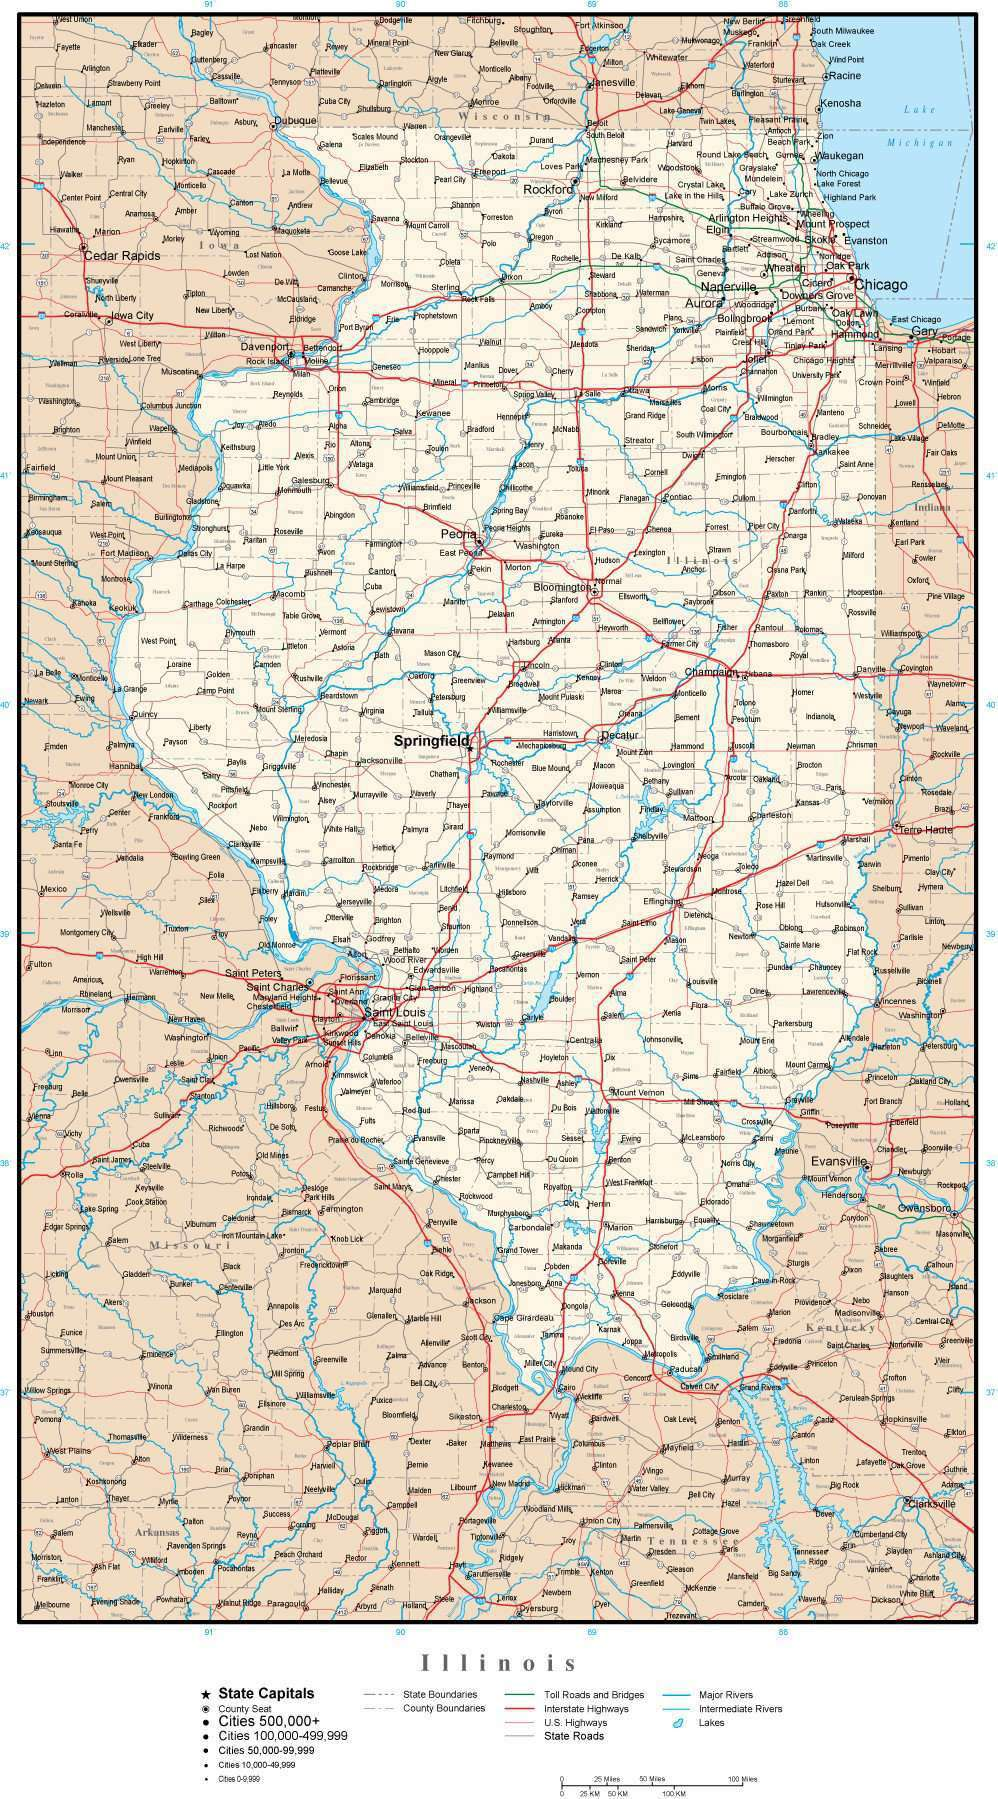 Illinois Map with Capital, County Boundaries, Cities, Roads, and Water on illinois highway maps, louisiana parish road maps, illinois county land maps, illinois county map printable, illinois bike path maps, illinois county township maps, illinois county history, illinois trail maps, illinois city street maps, illinois county plat maps, illinois dot county maps, illinois county city maps,